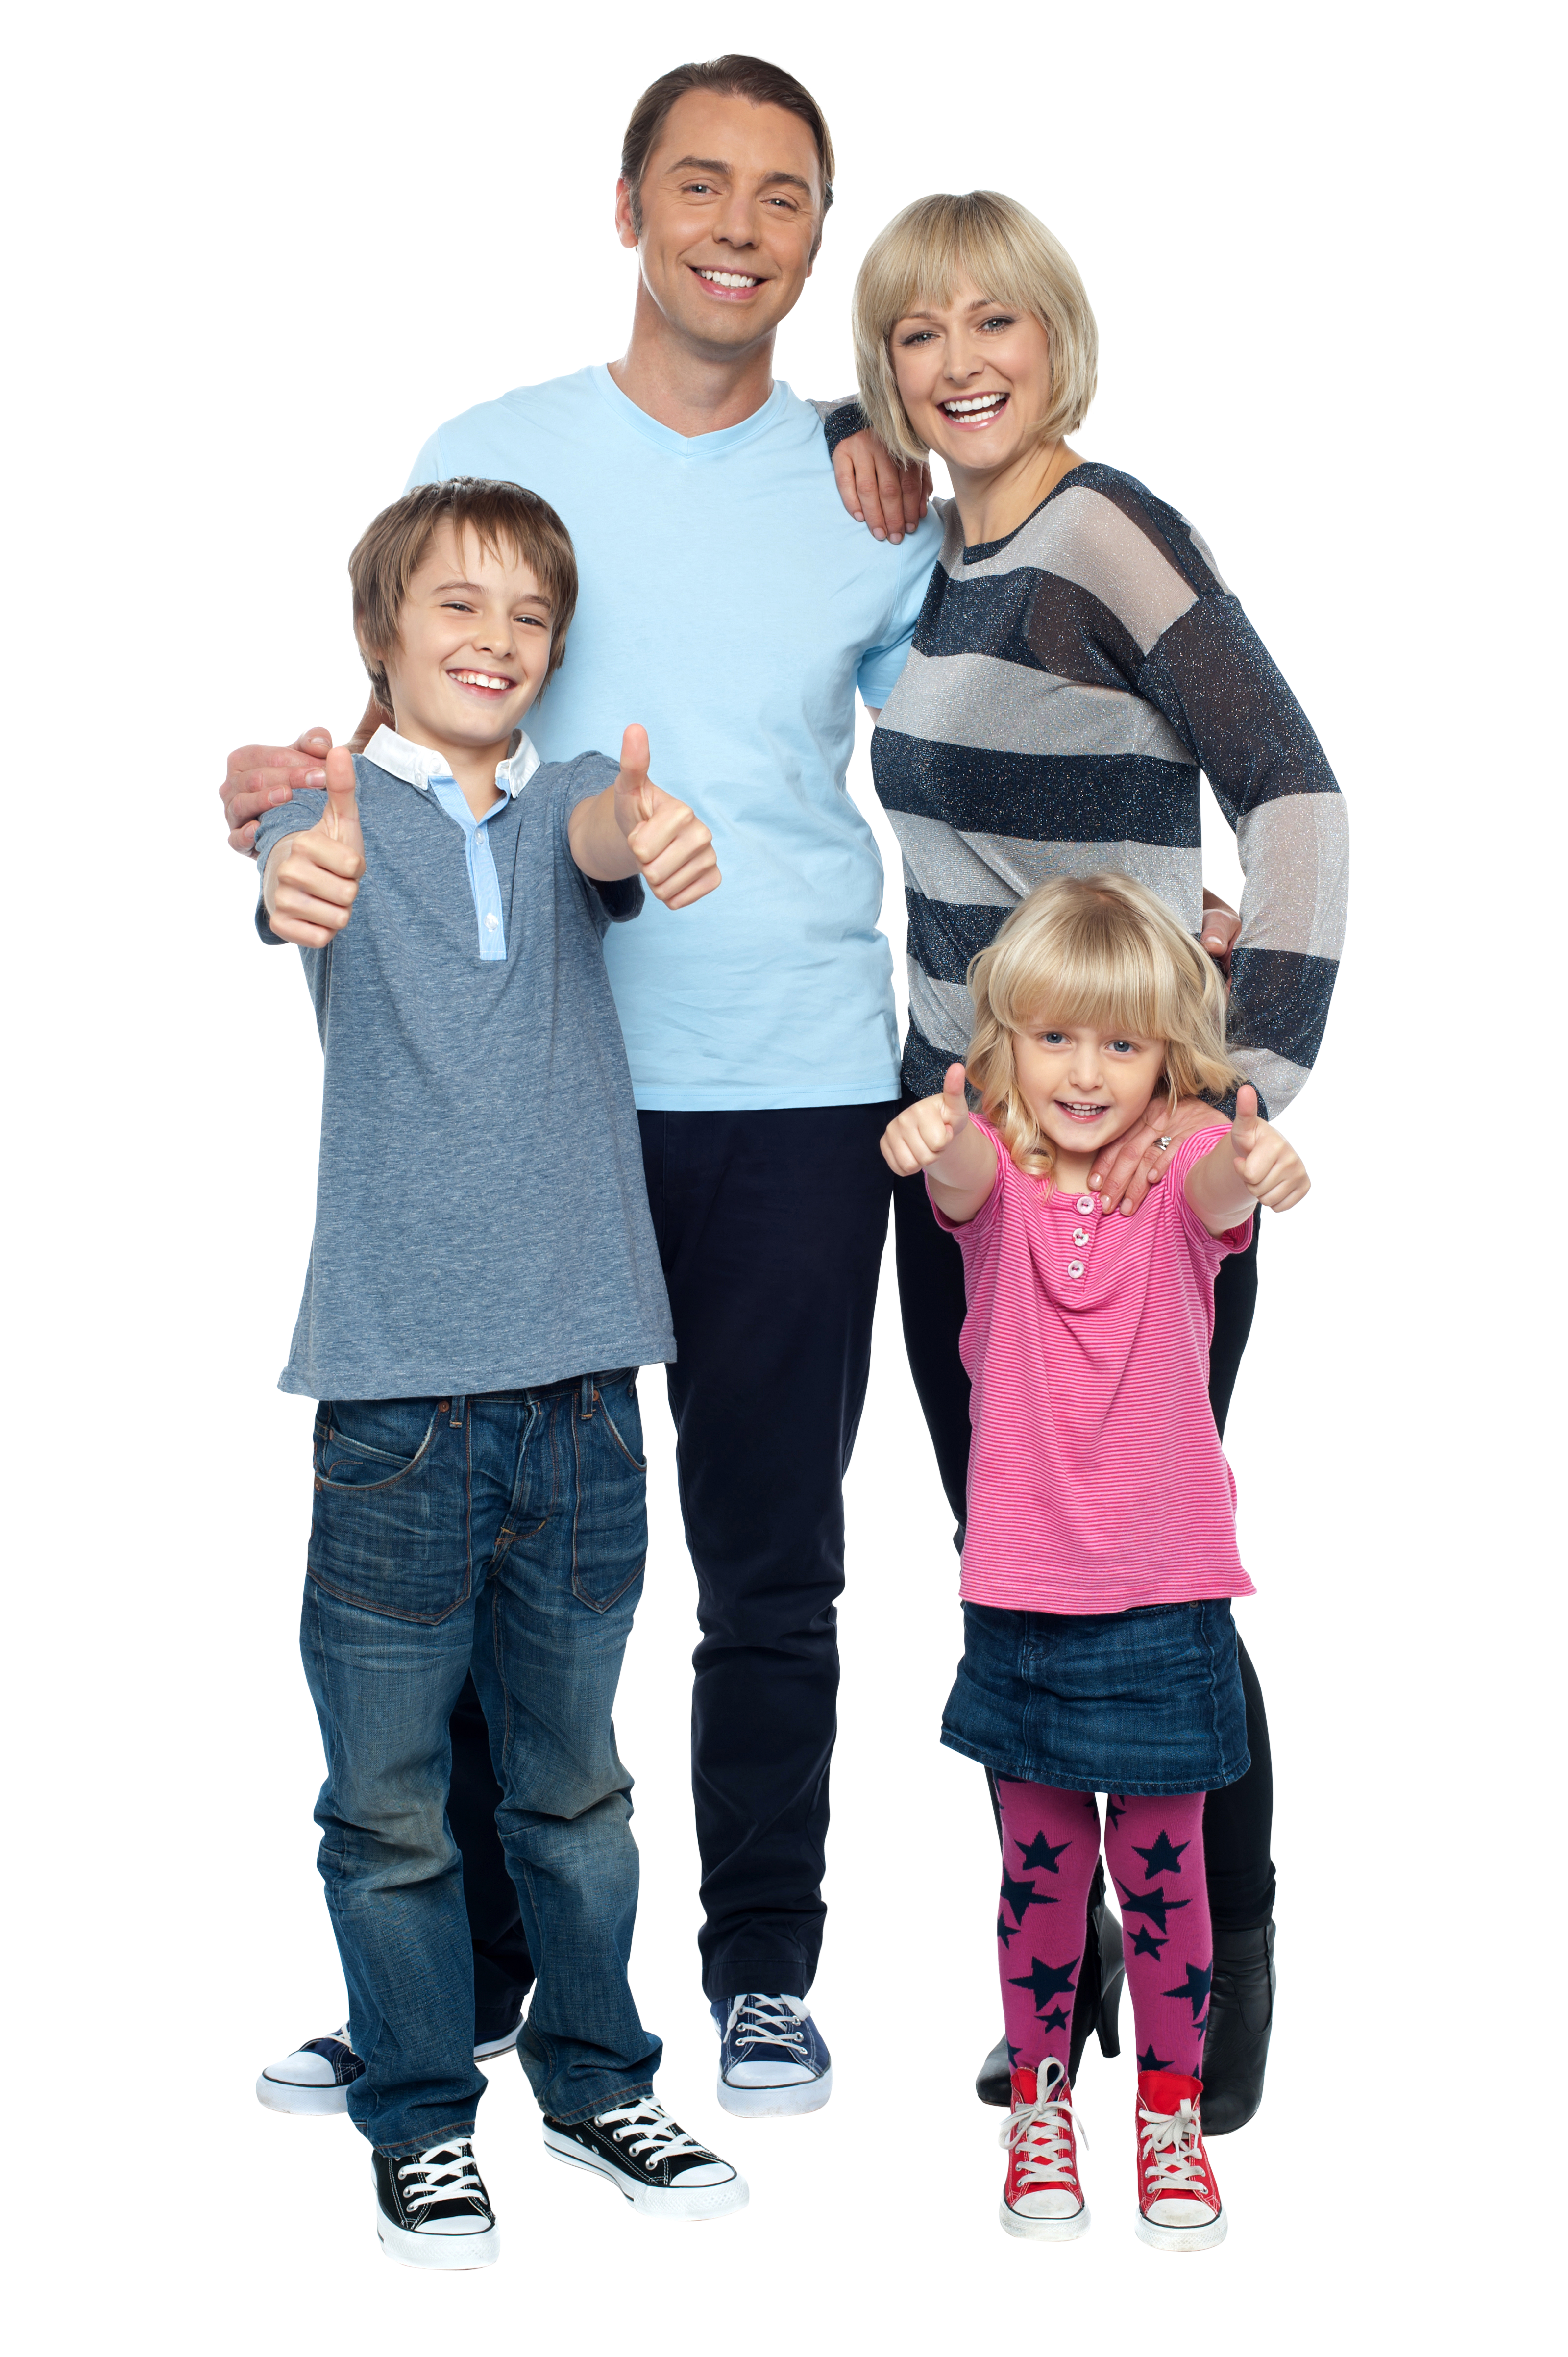 Family PNG Images Transparent Background.